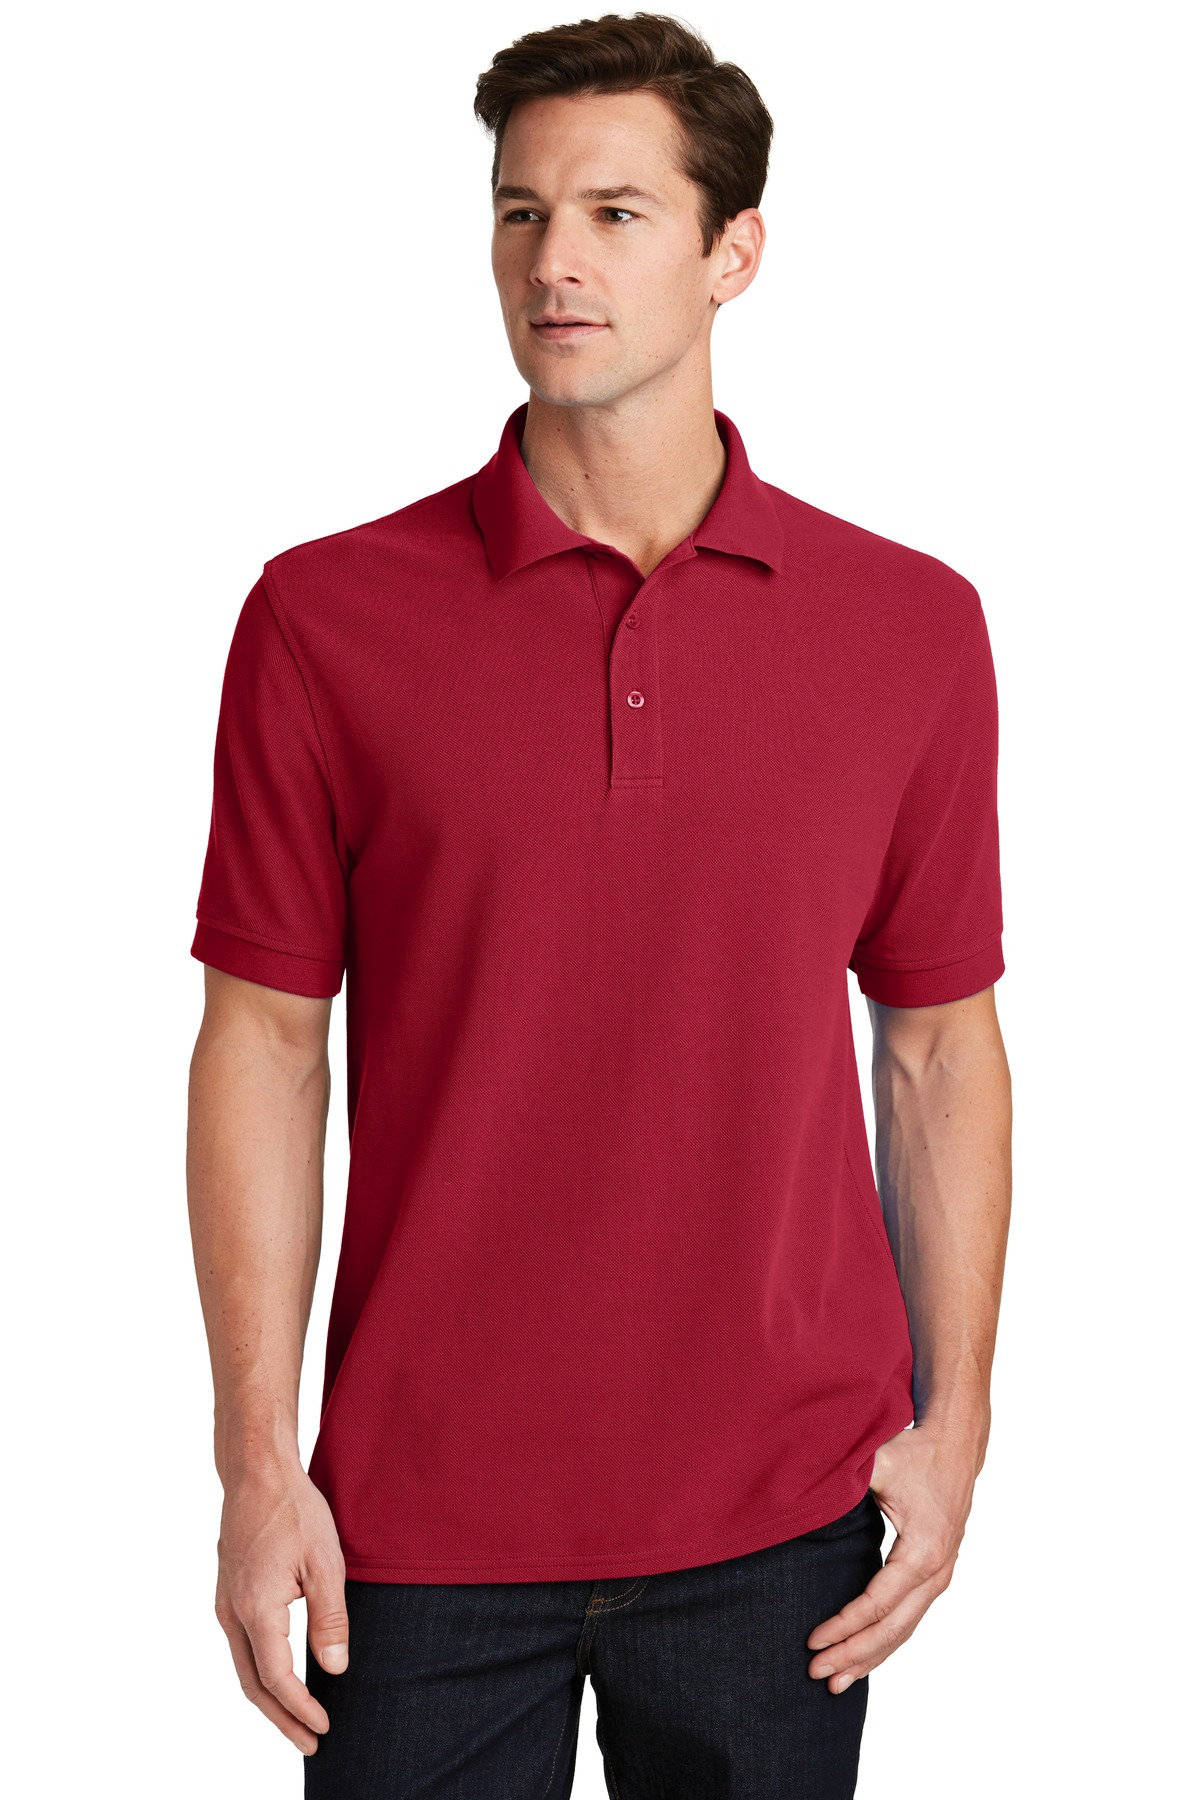 Port & Company ®  Combed Ring Spun Pique Polo. KP1500 - Red